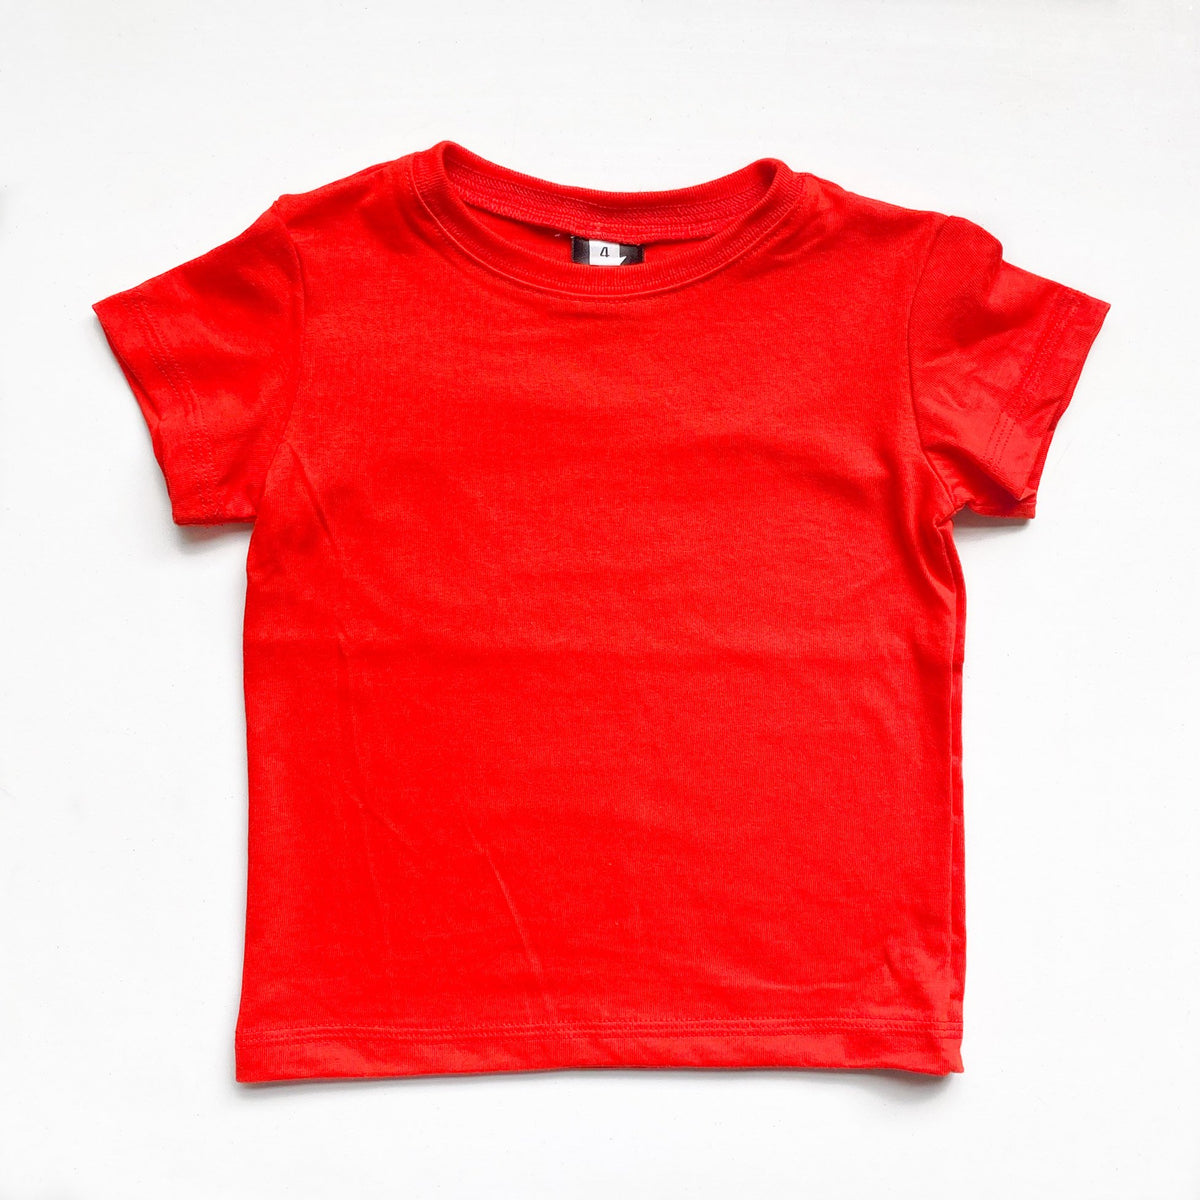 Kids' Classic color:Bright Red Combed Cotton Kids' T-shirts New T-shirts